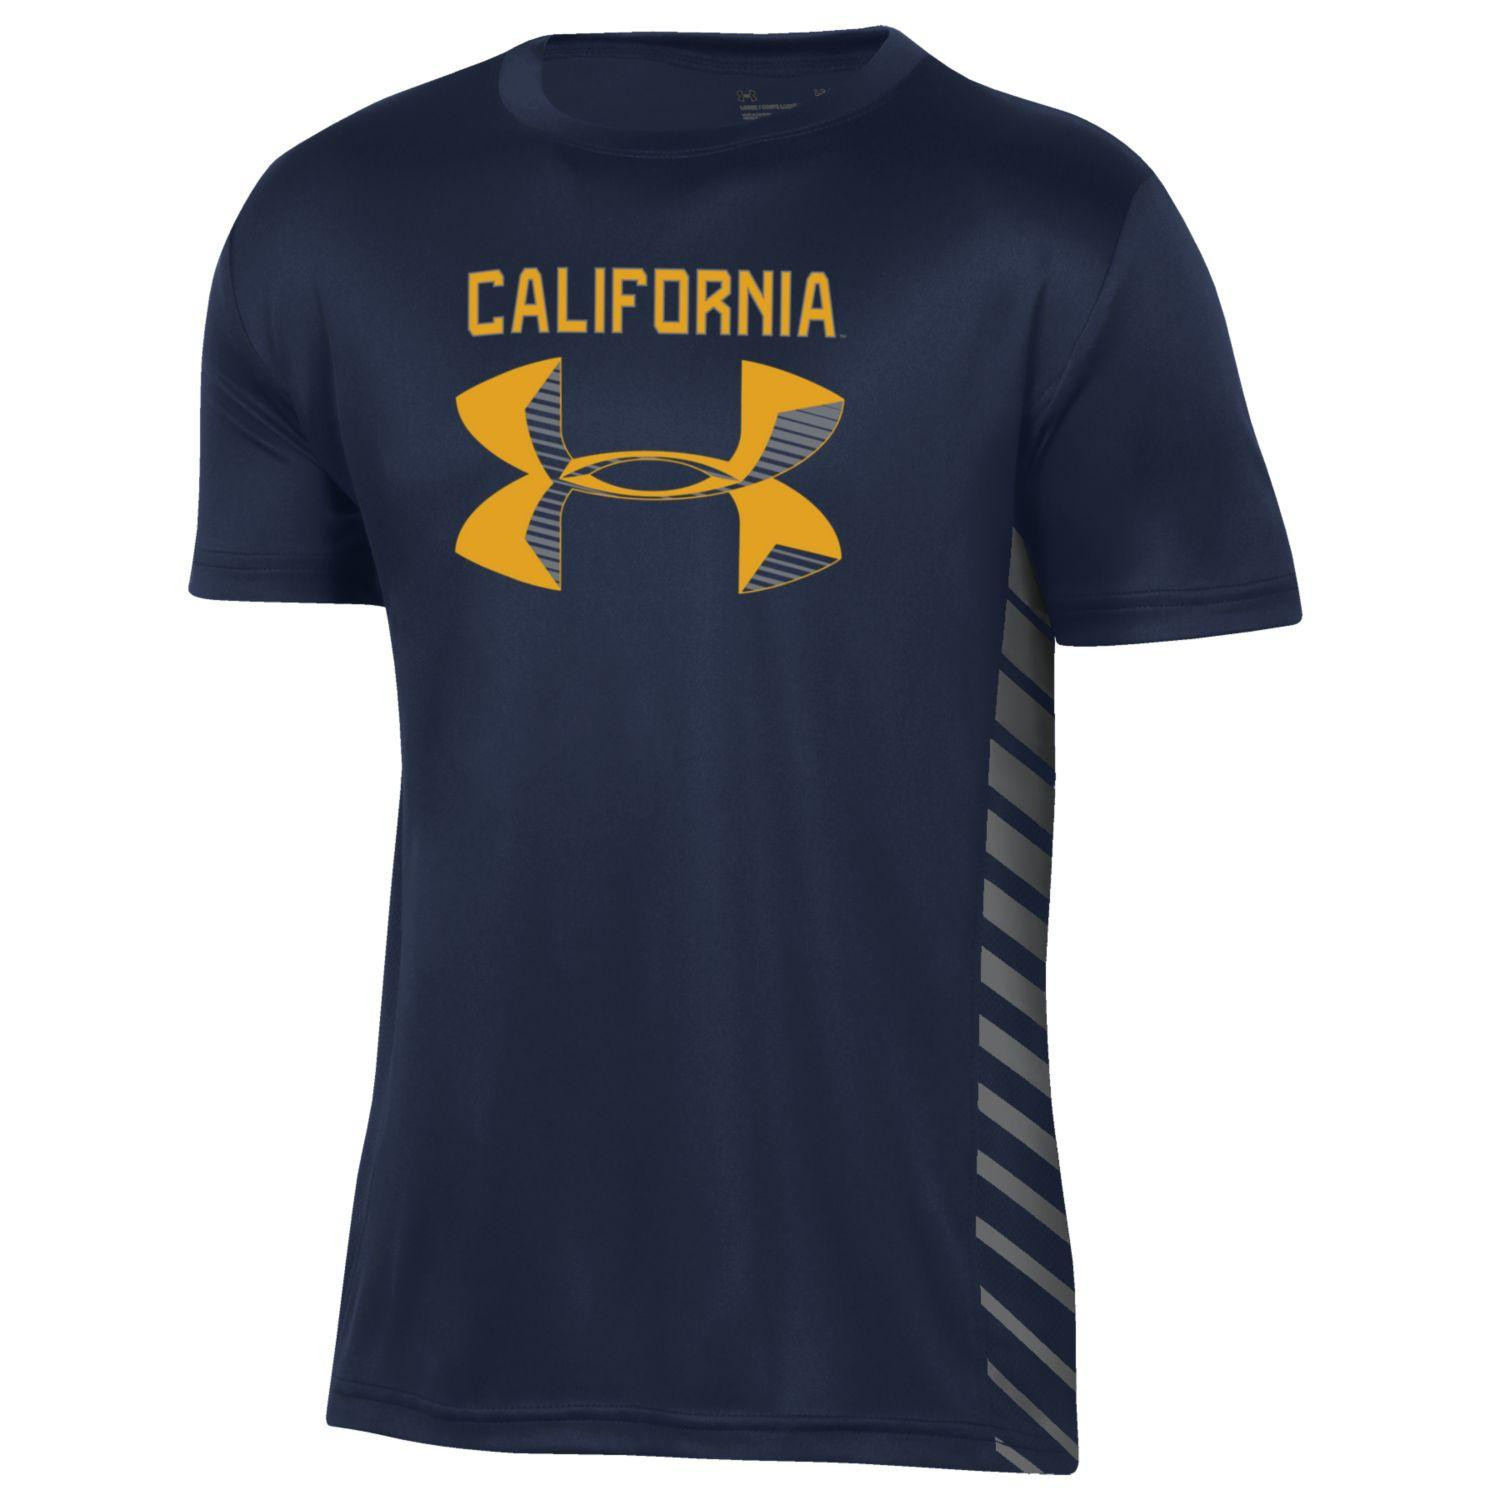 Youth Novelty Tech Tee Under Armour